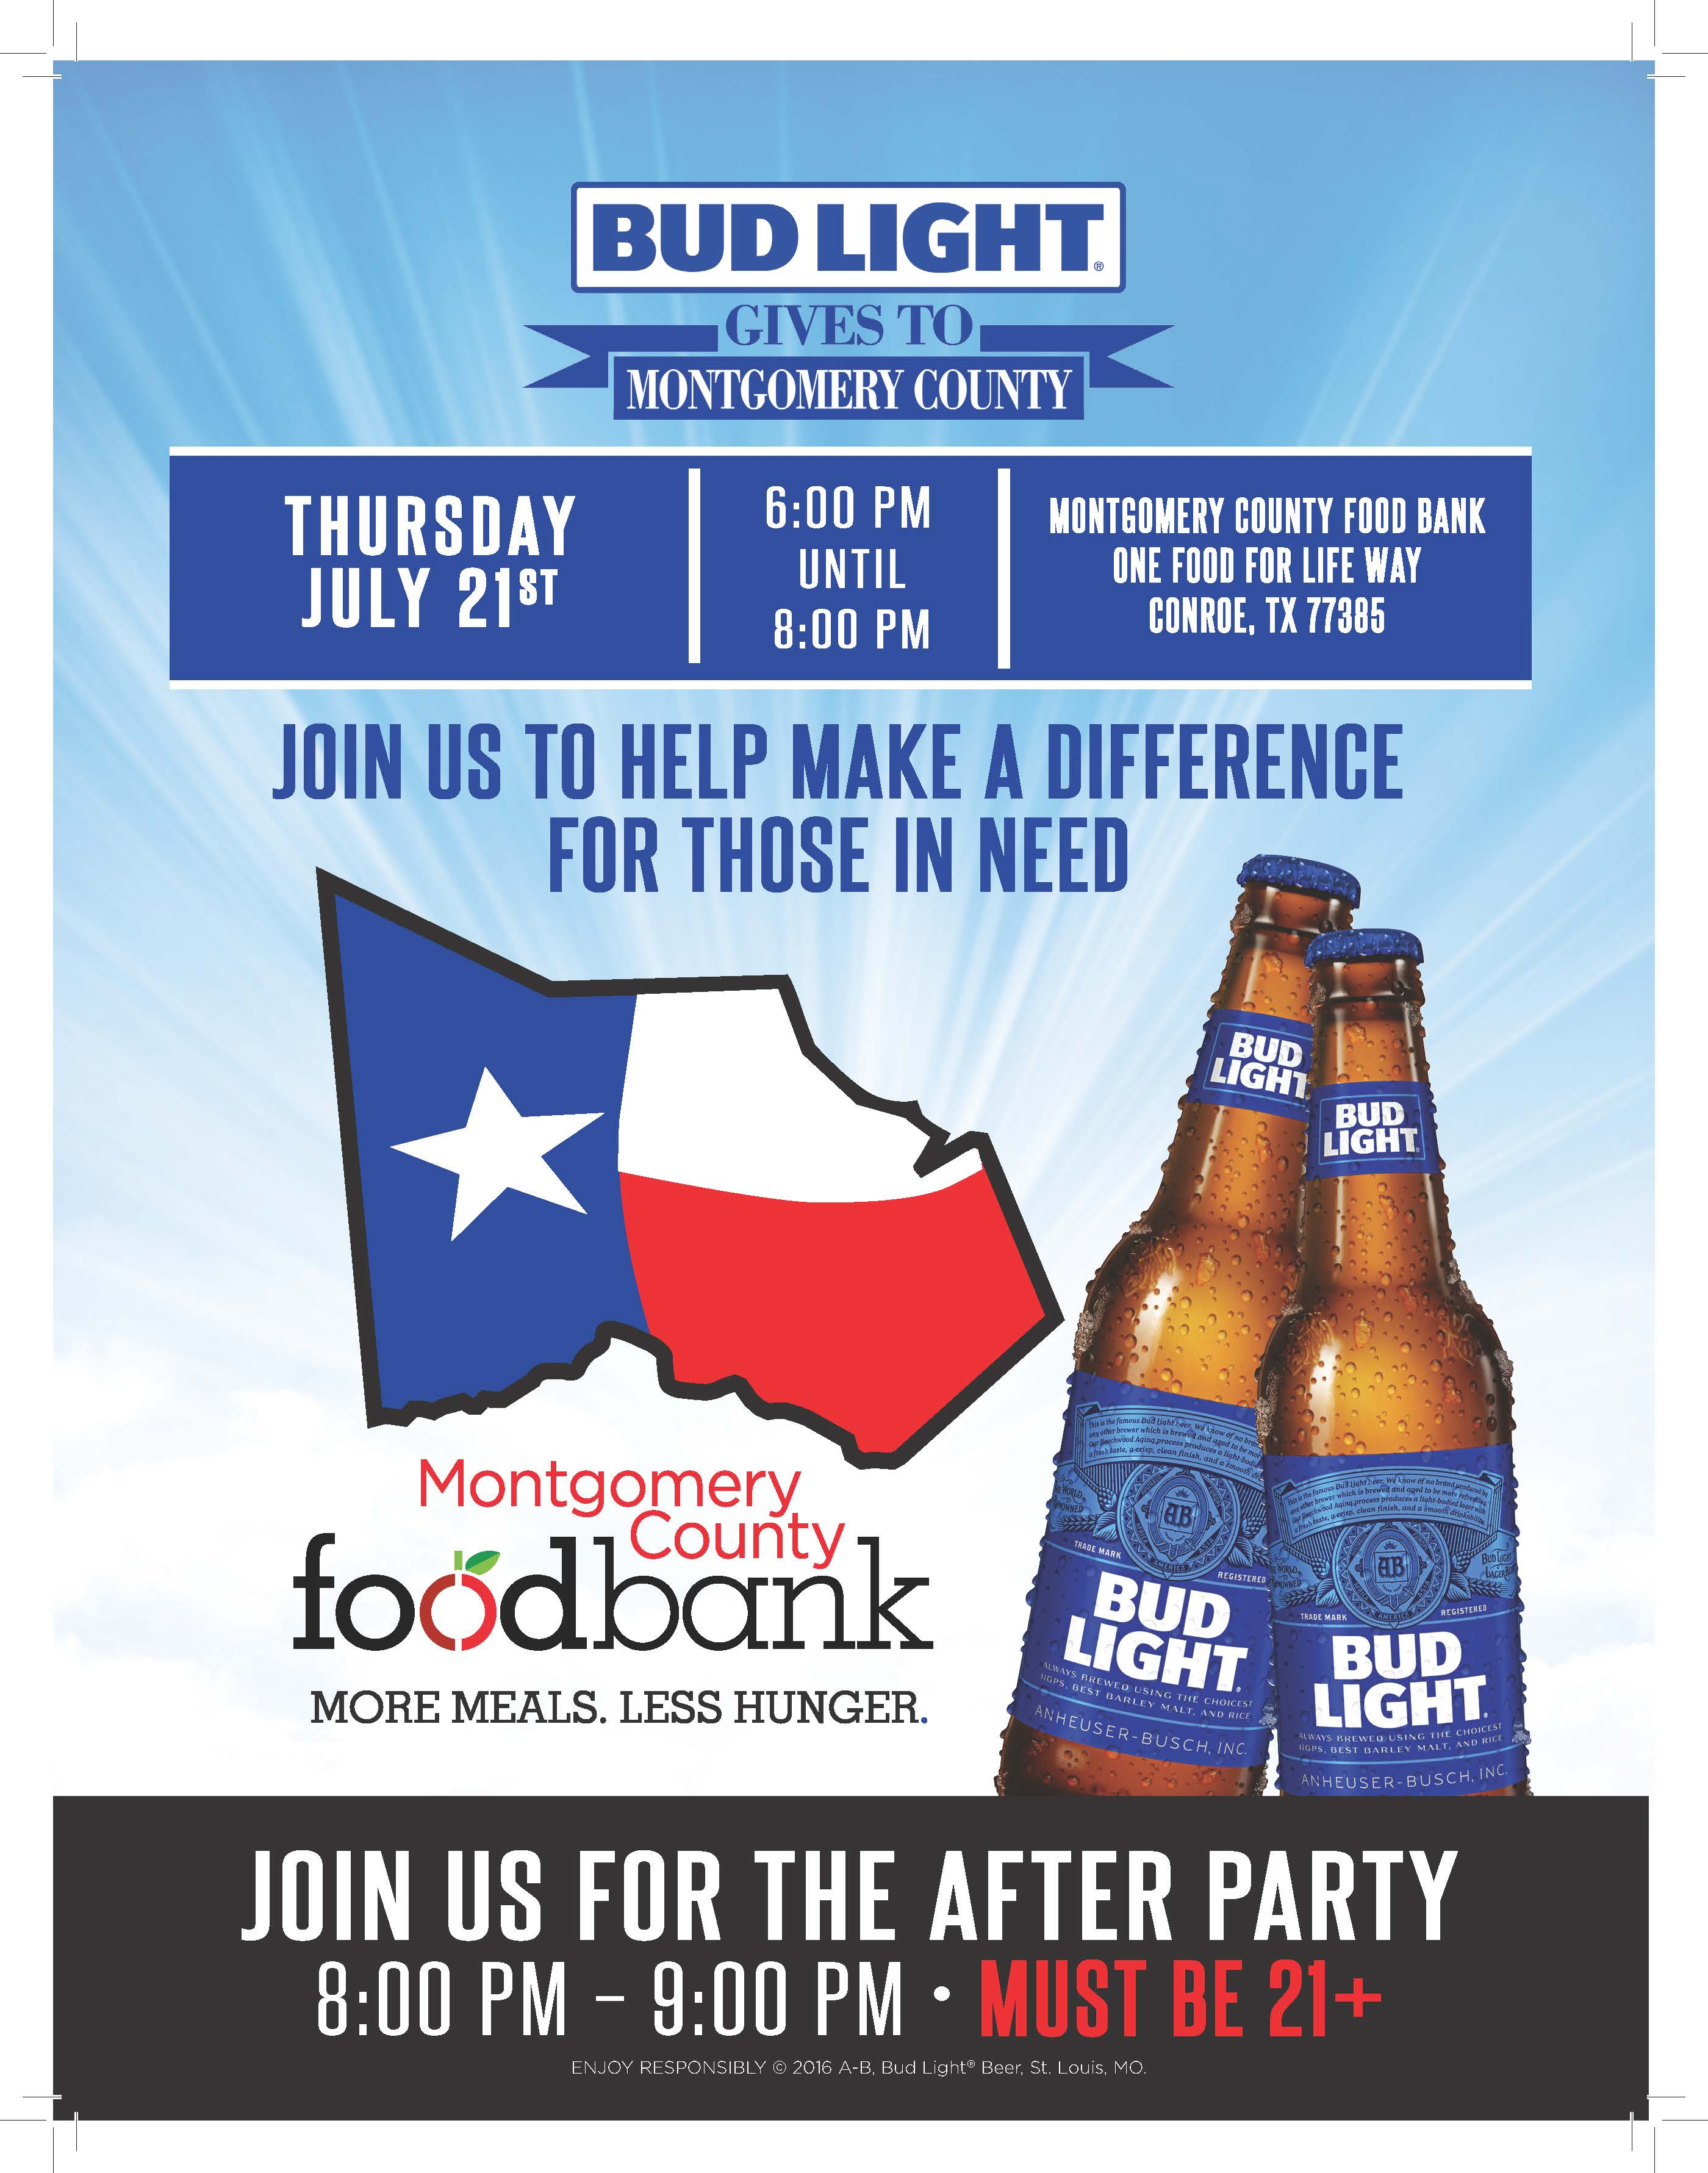 Bud Light Gives to Montgomery County Flyer